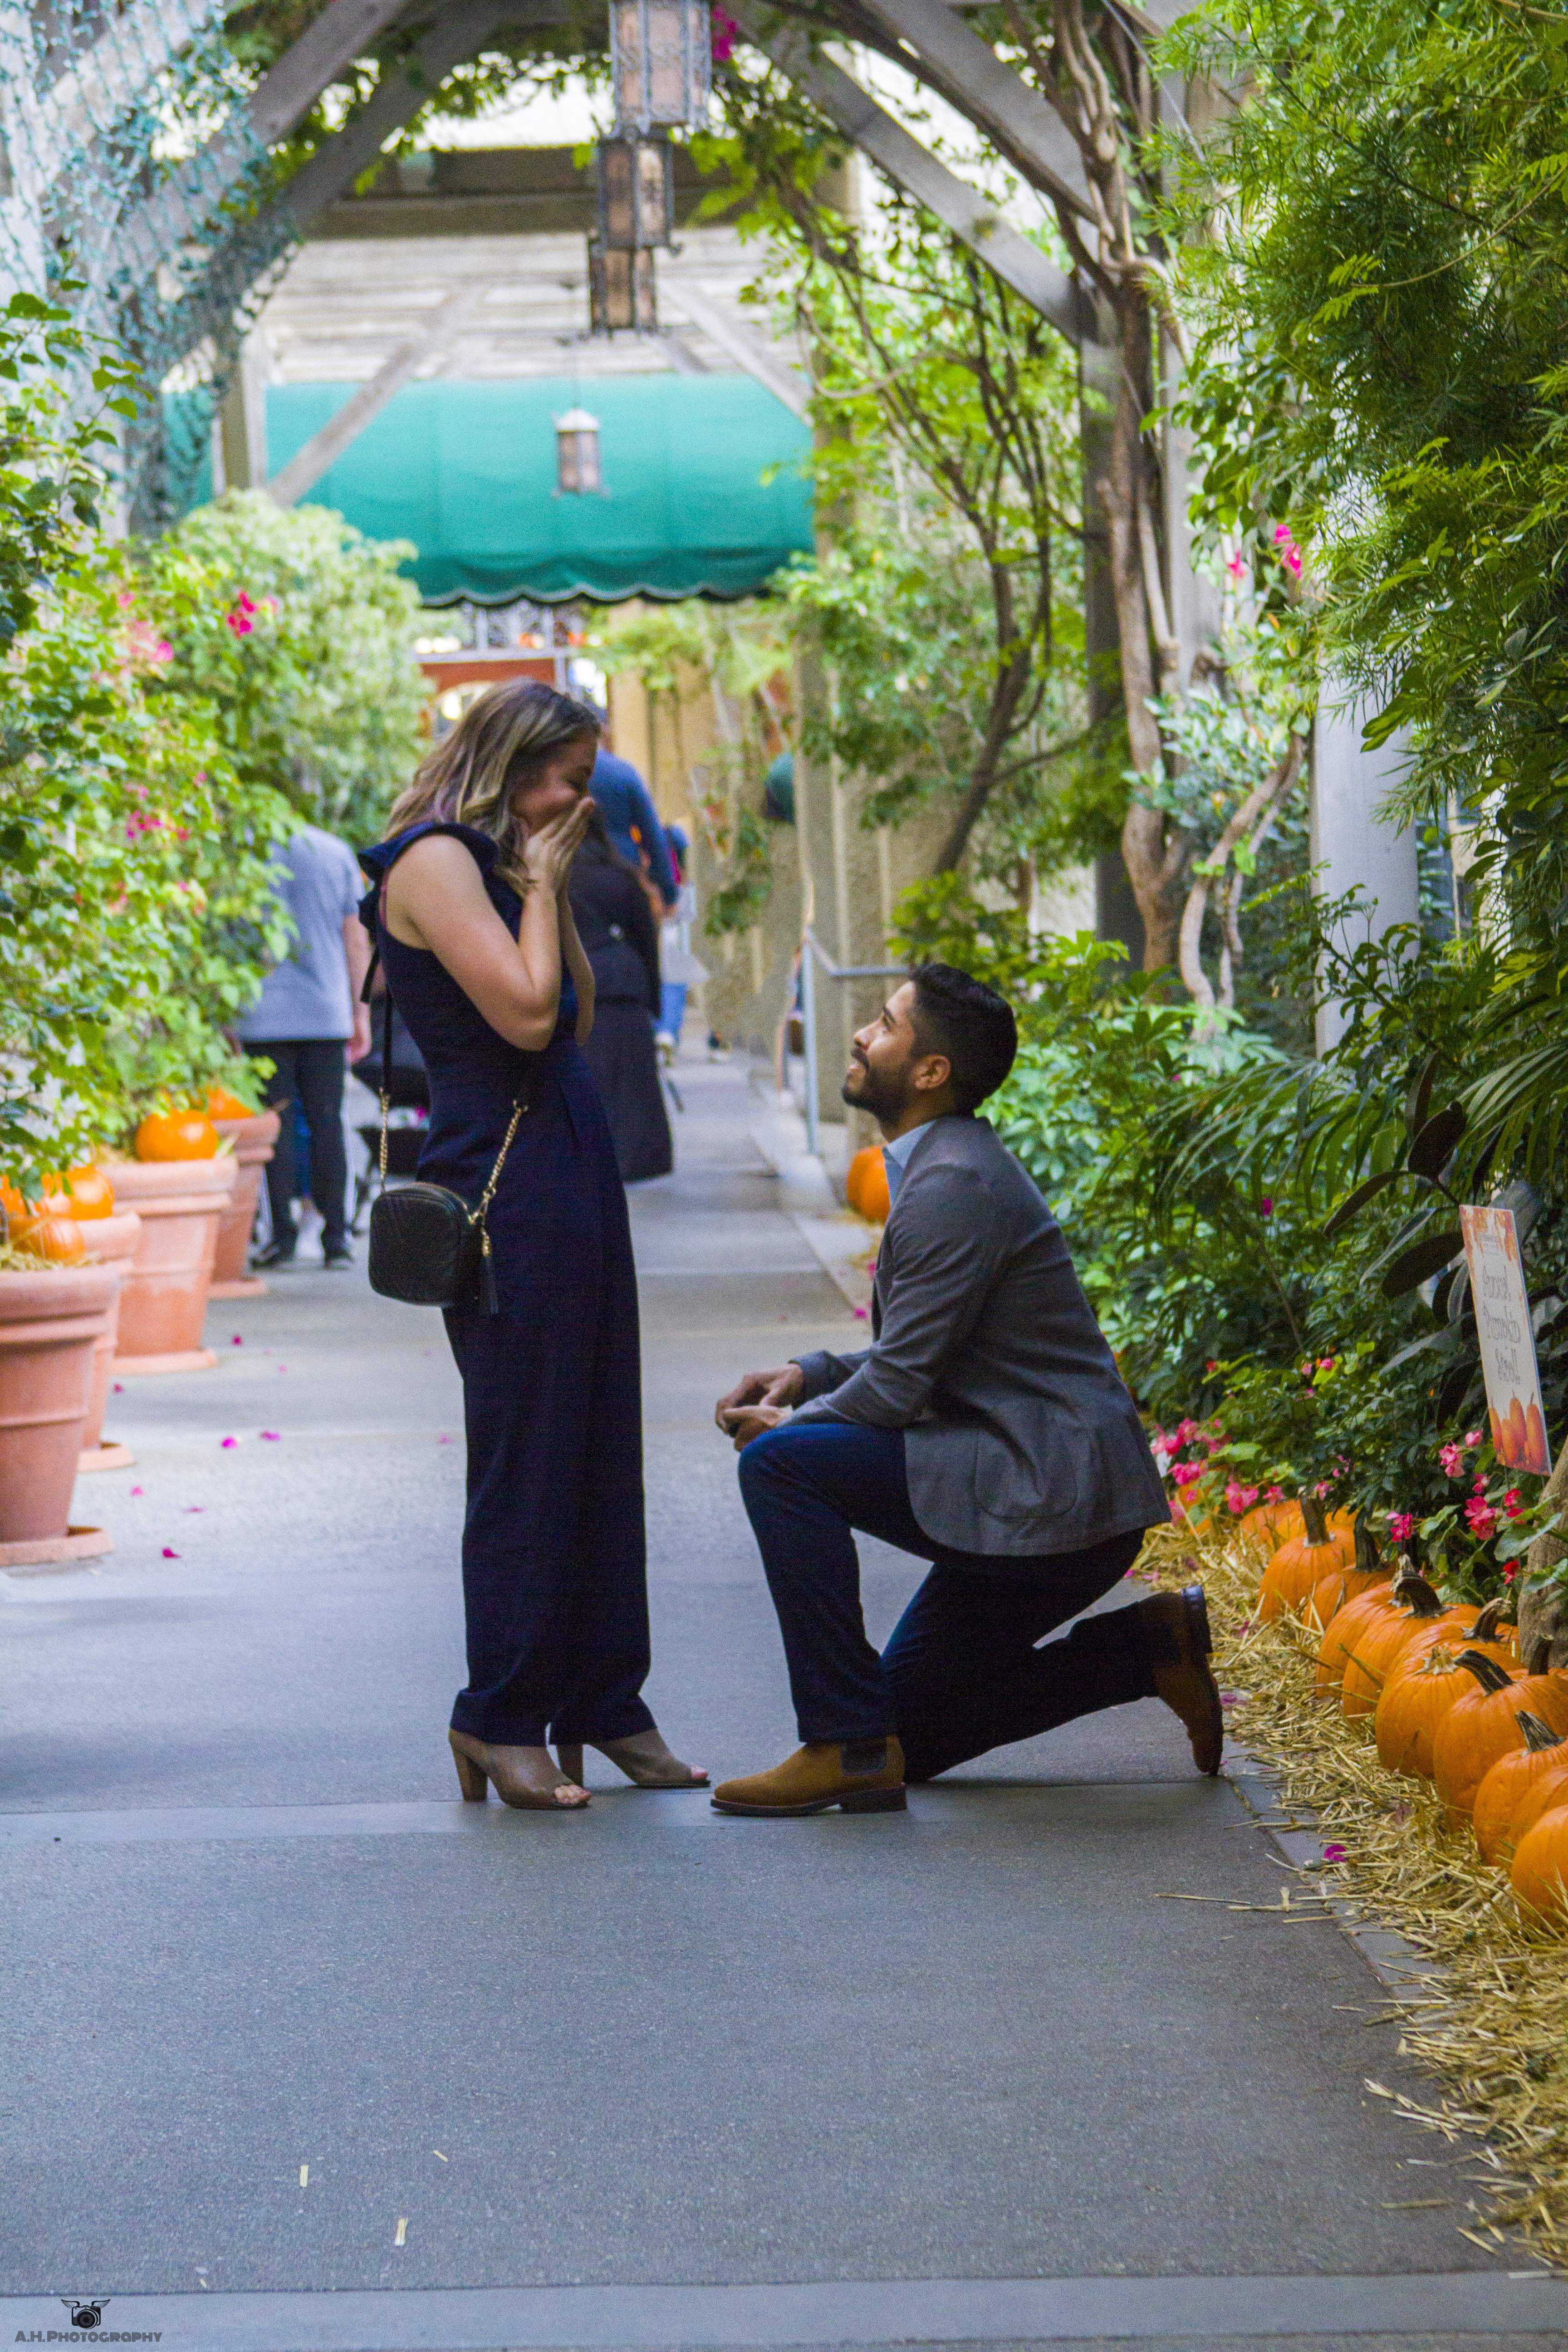 Engagement Proposal Photography 2018